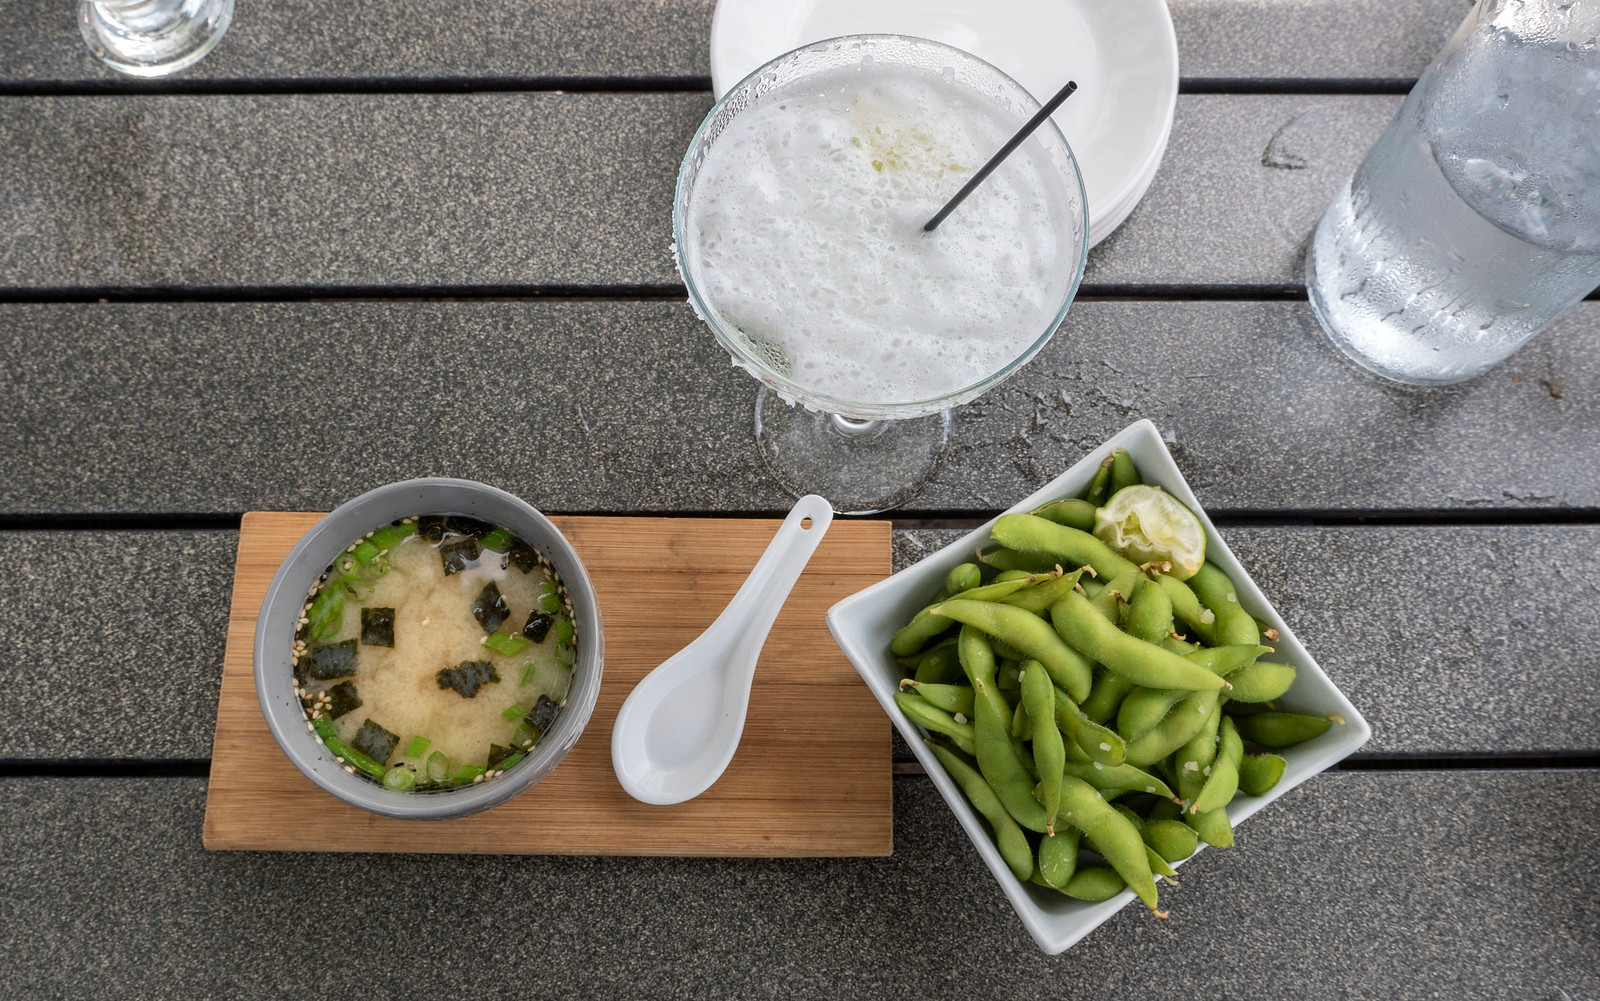 Miso soup and edamame at Midori Sushi. Grand Bend Vegan and Vegetarian Restaurant Guide